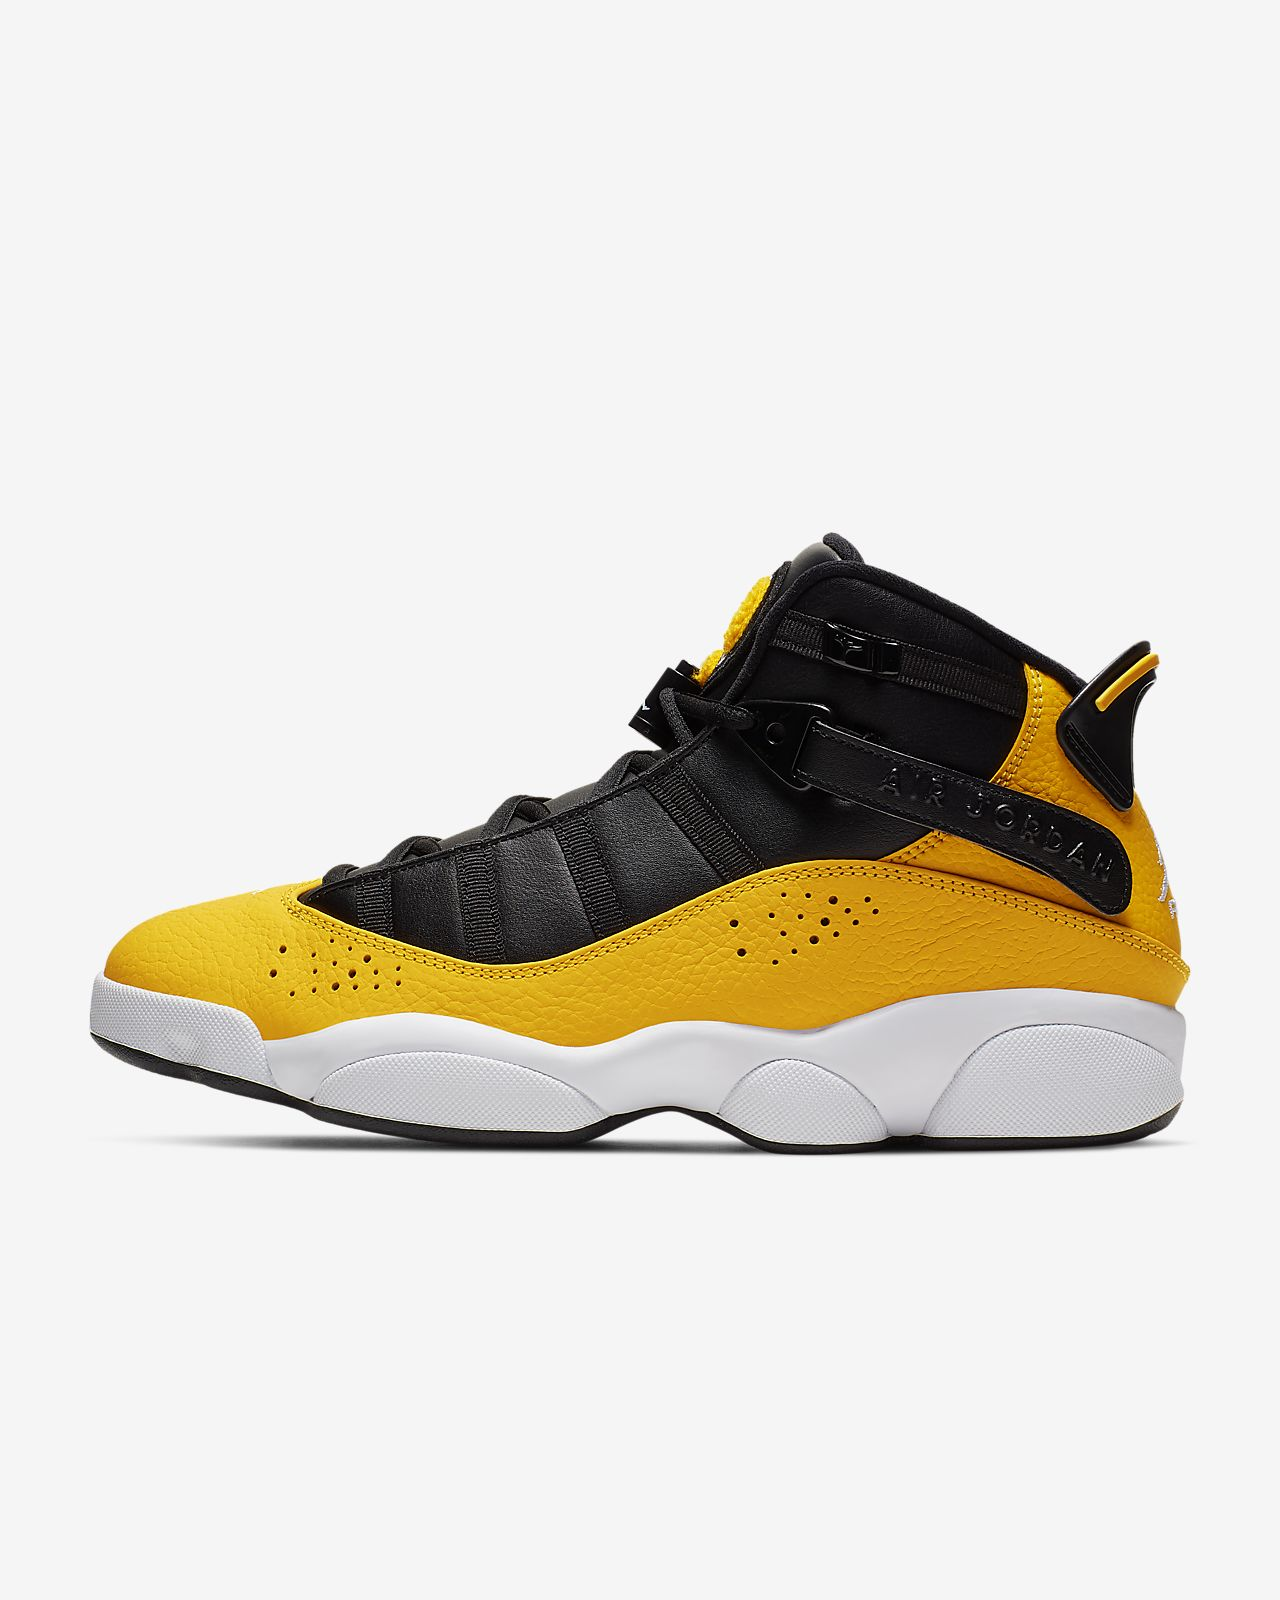 lowest price 5f631 6663b Low Resolution Jordan 6 Rings Herrenschuh Jordan 6 Rings Herrenschuh